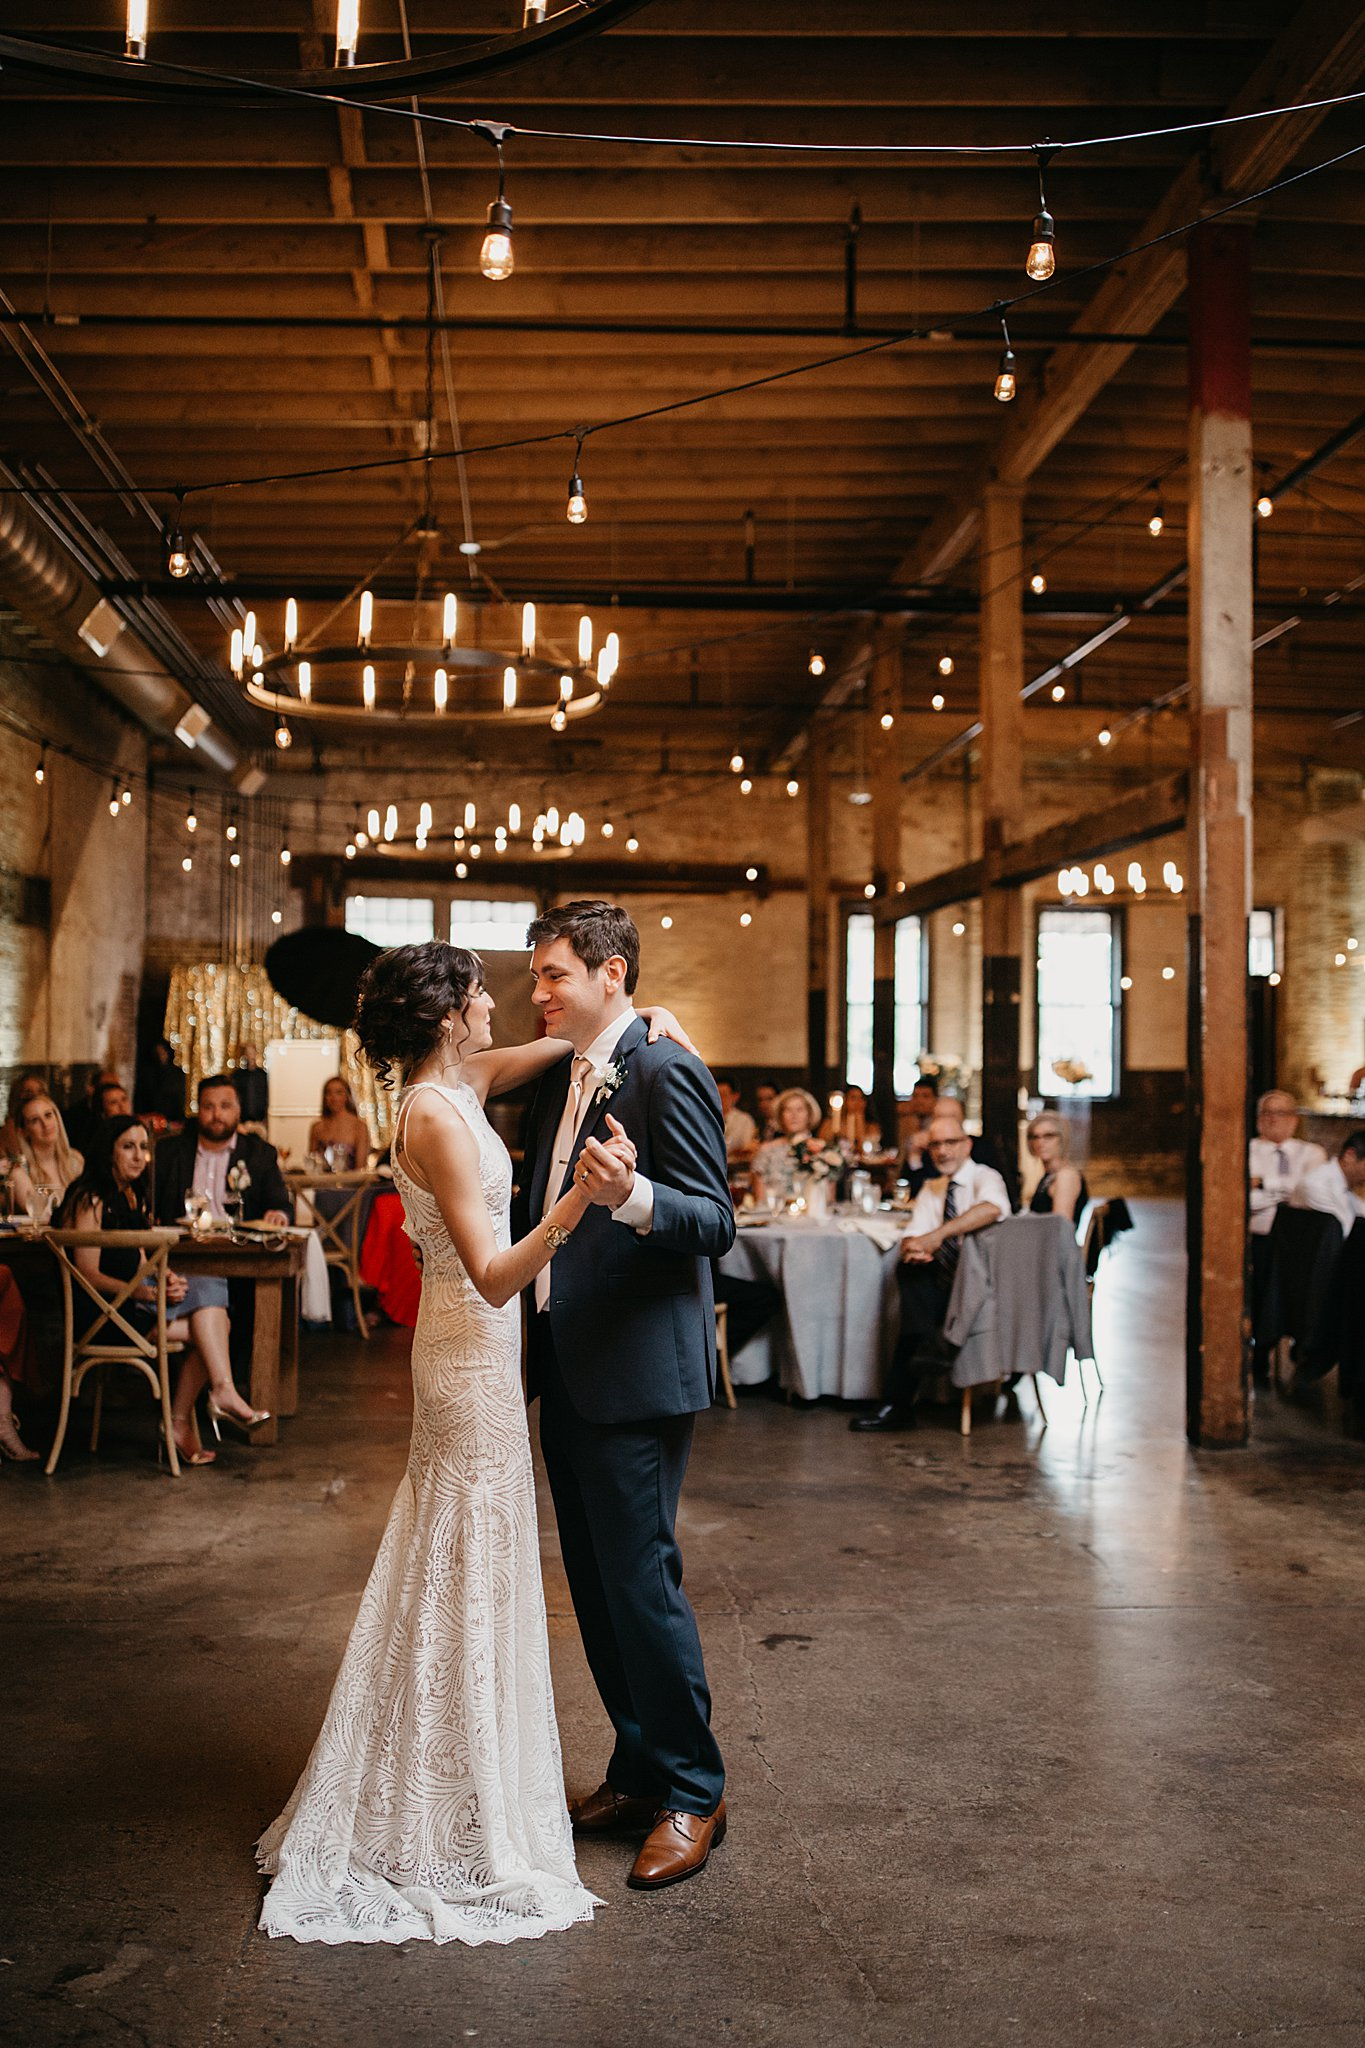 Wilderlove Co_Wedding Photographer_Industrial Wedding_Jewish Wedding_Dallas Texas Wedding_Brake & Clutch Warehouse_North Texas Photographer_0076.jpg